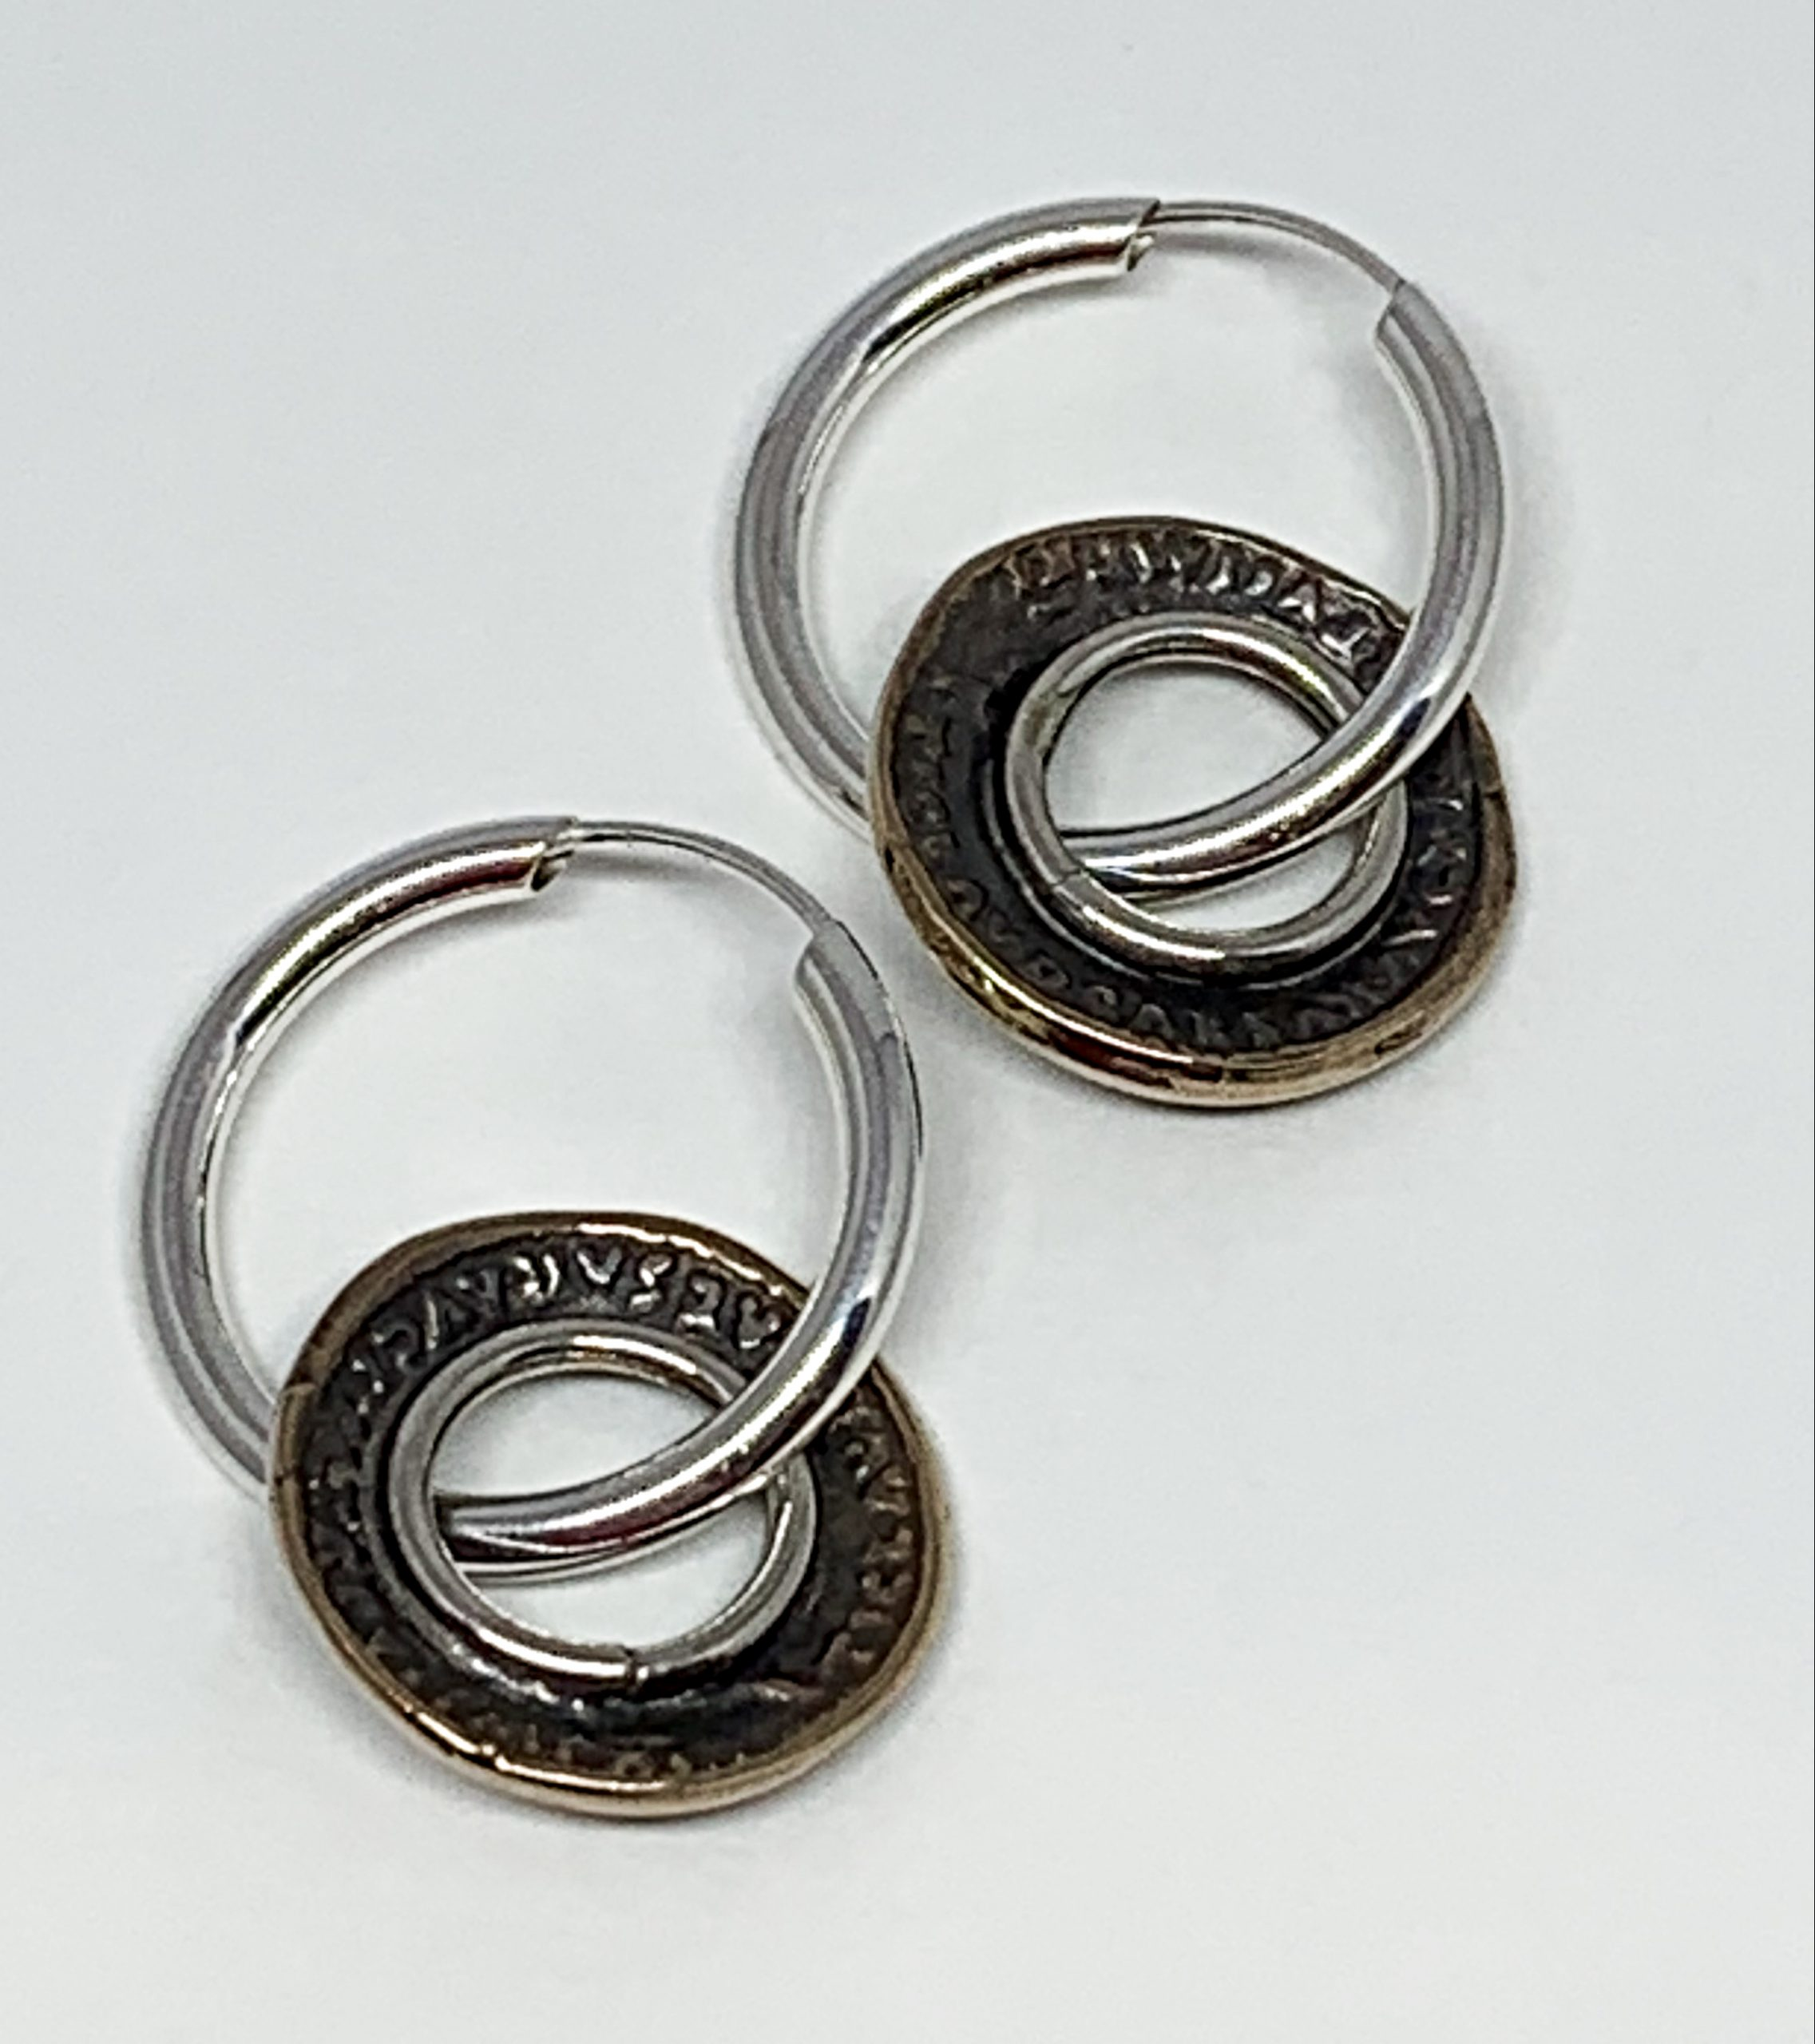 Sterling silver and bronze coin hoop earrings by Karyn Chopik | Effusion Art Gallery + Cast Glass Studio, Invermere BC